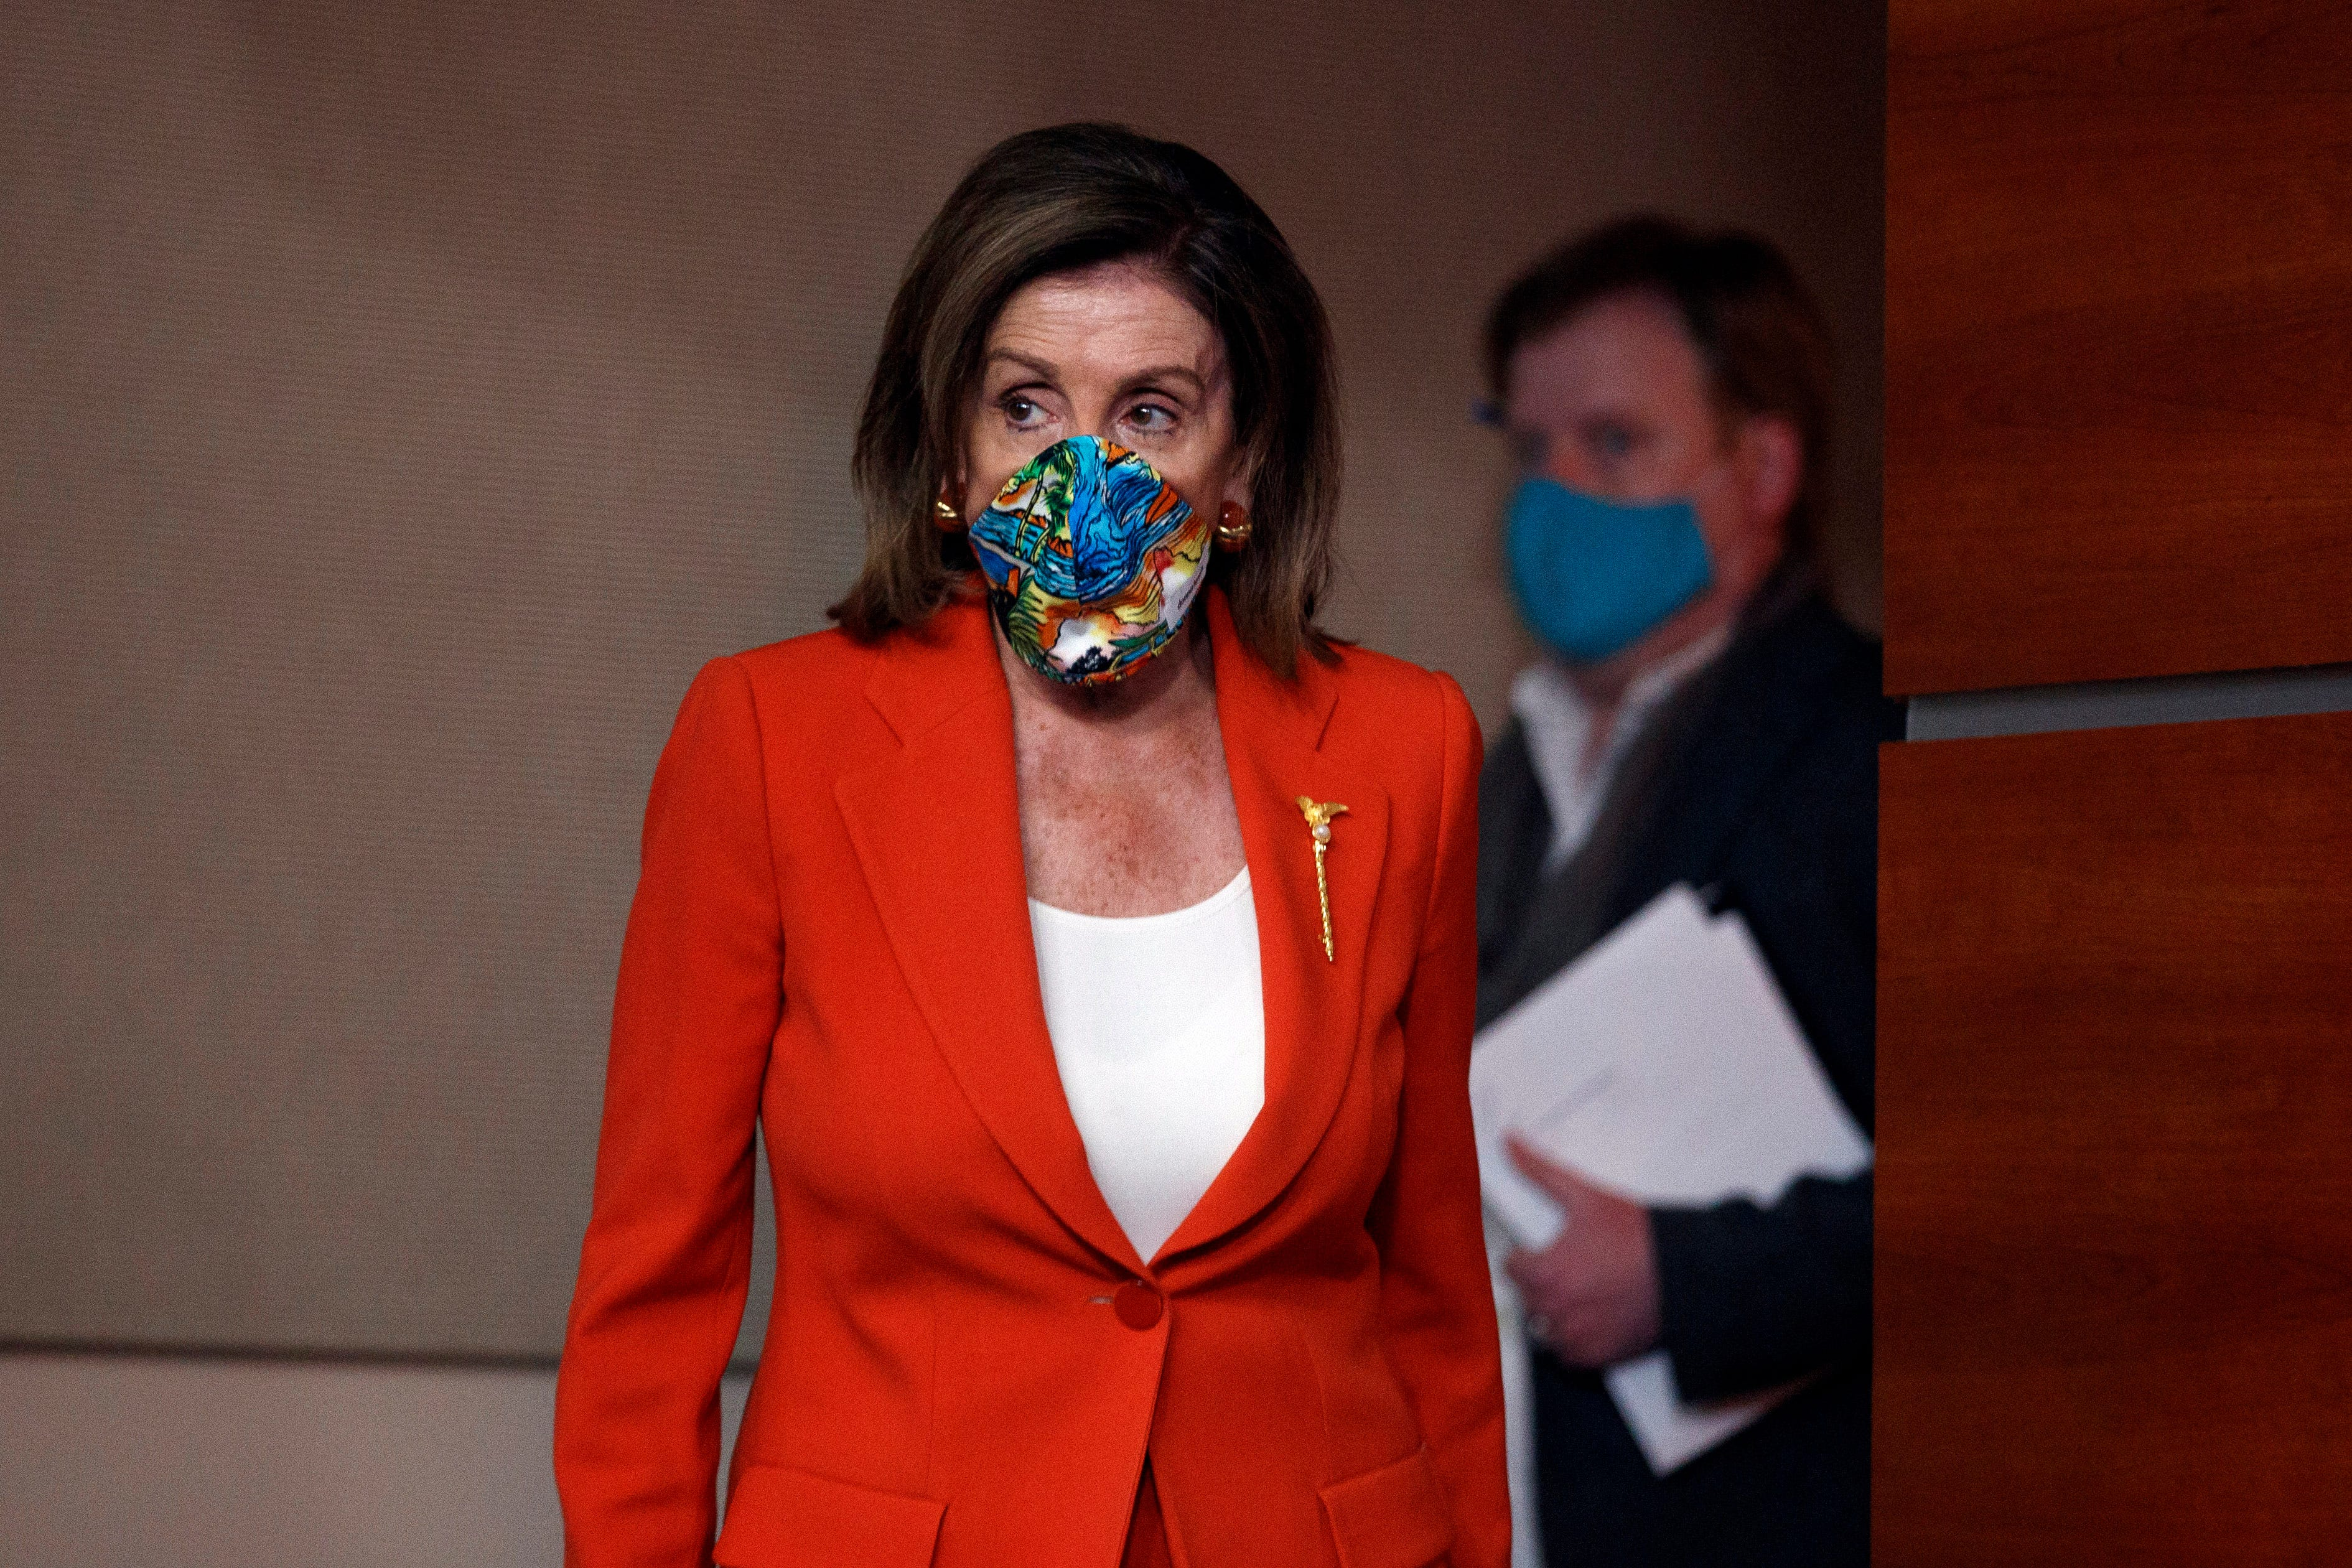 Russian bounty on US troops: Pelosi calls for intelligence briefing